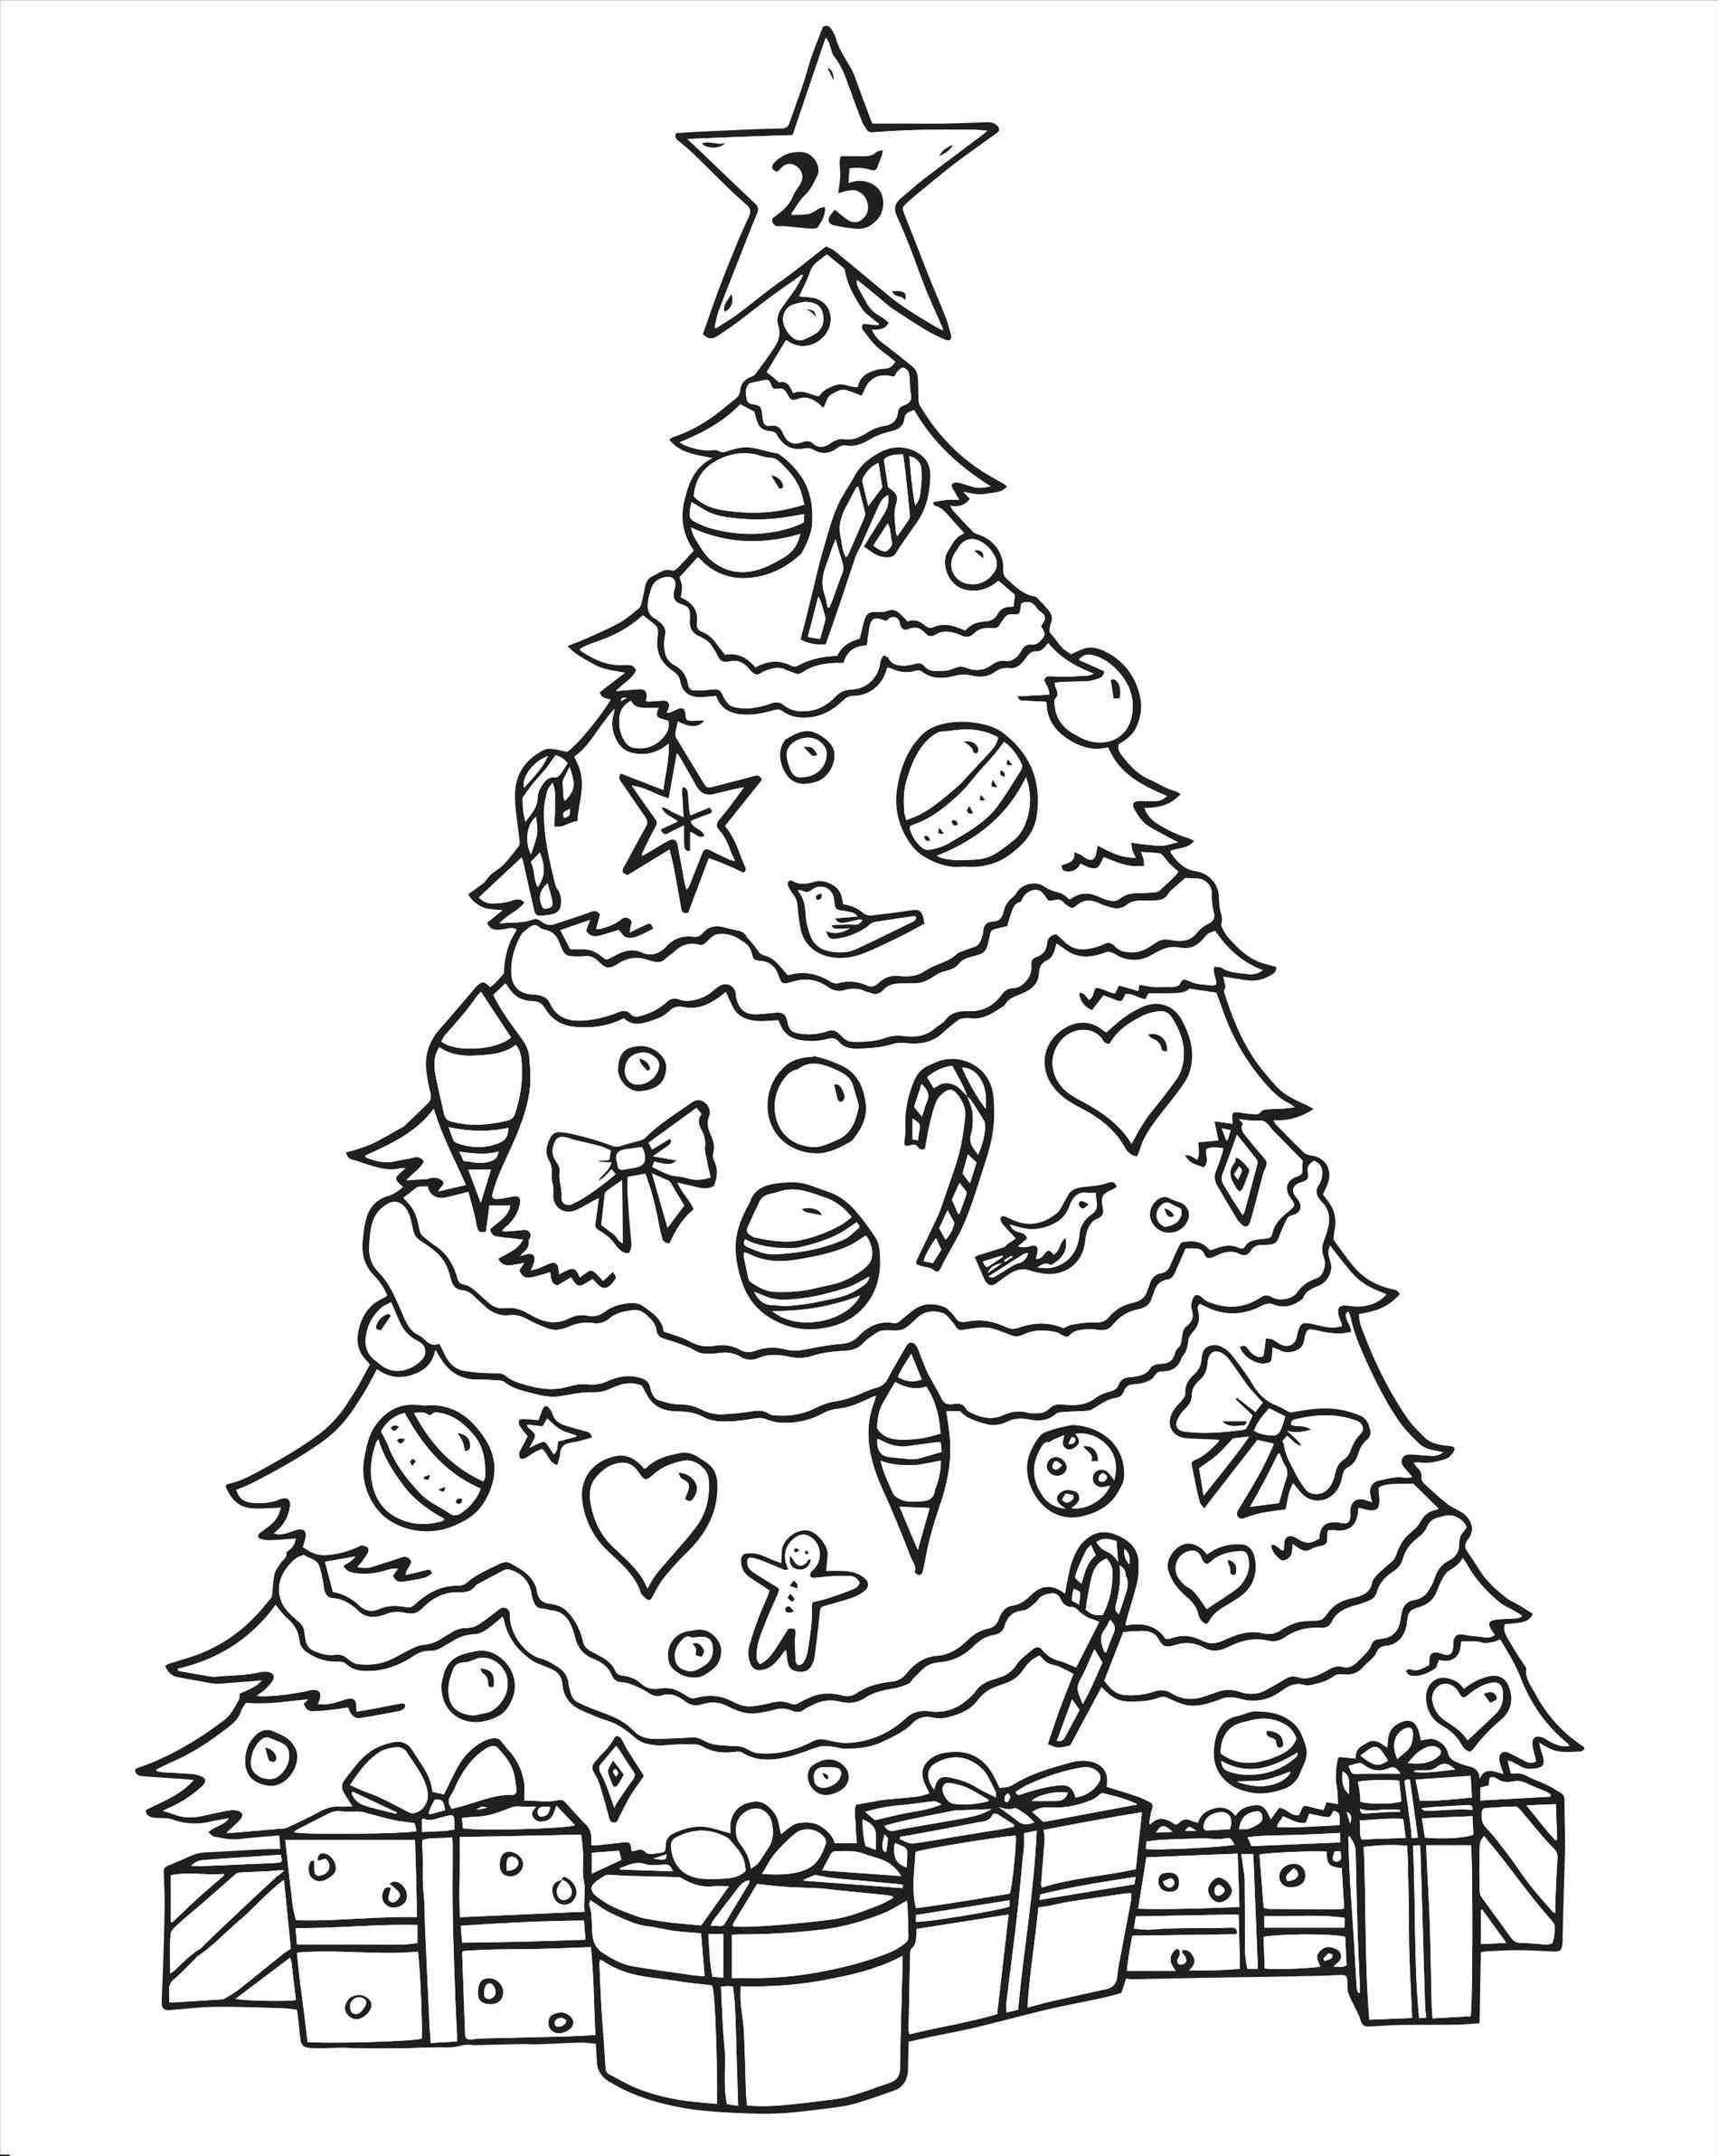 Christmas Trees Coloring Pages Christmas Tree Coloring Pages Christmas Tree Coloring Page Christmas Tree Drawing Tree Coloring Page